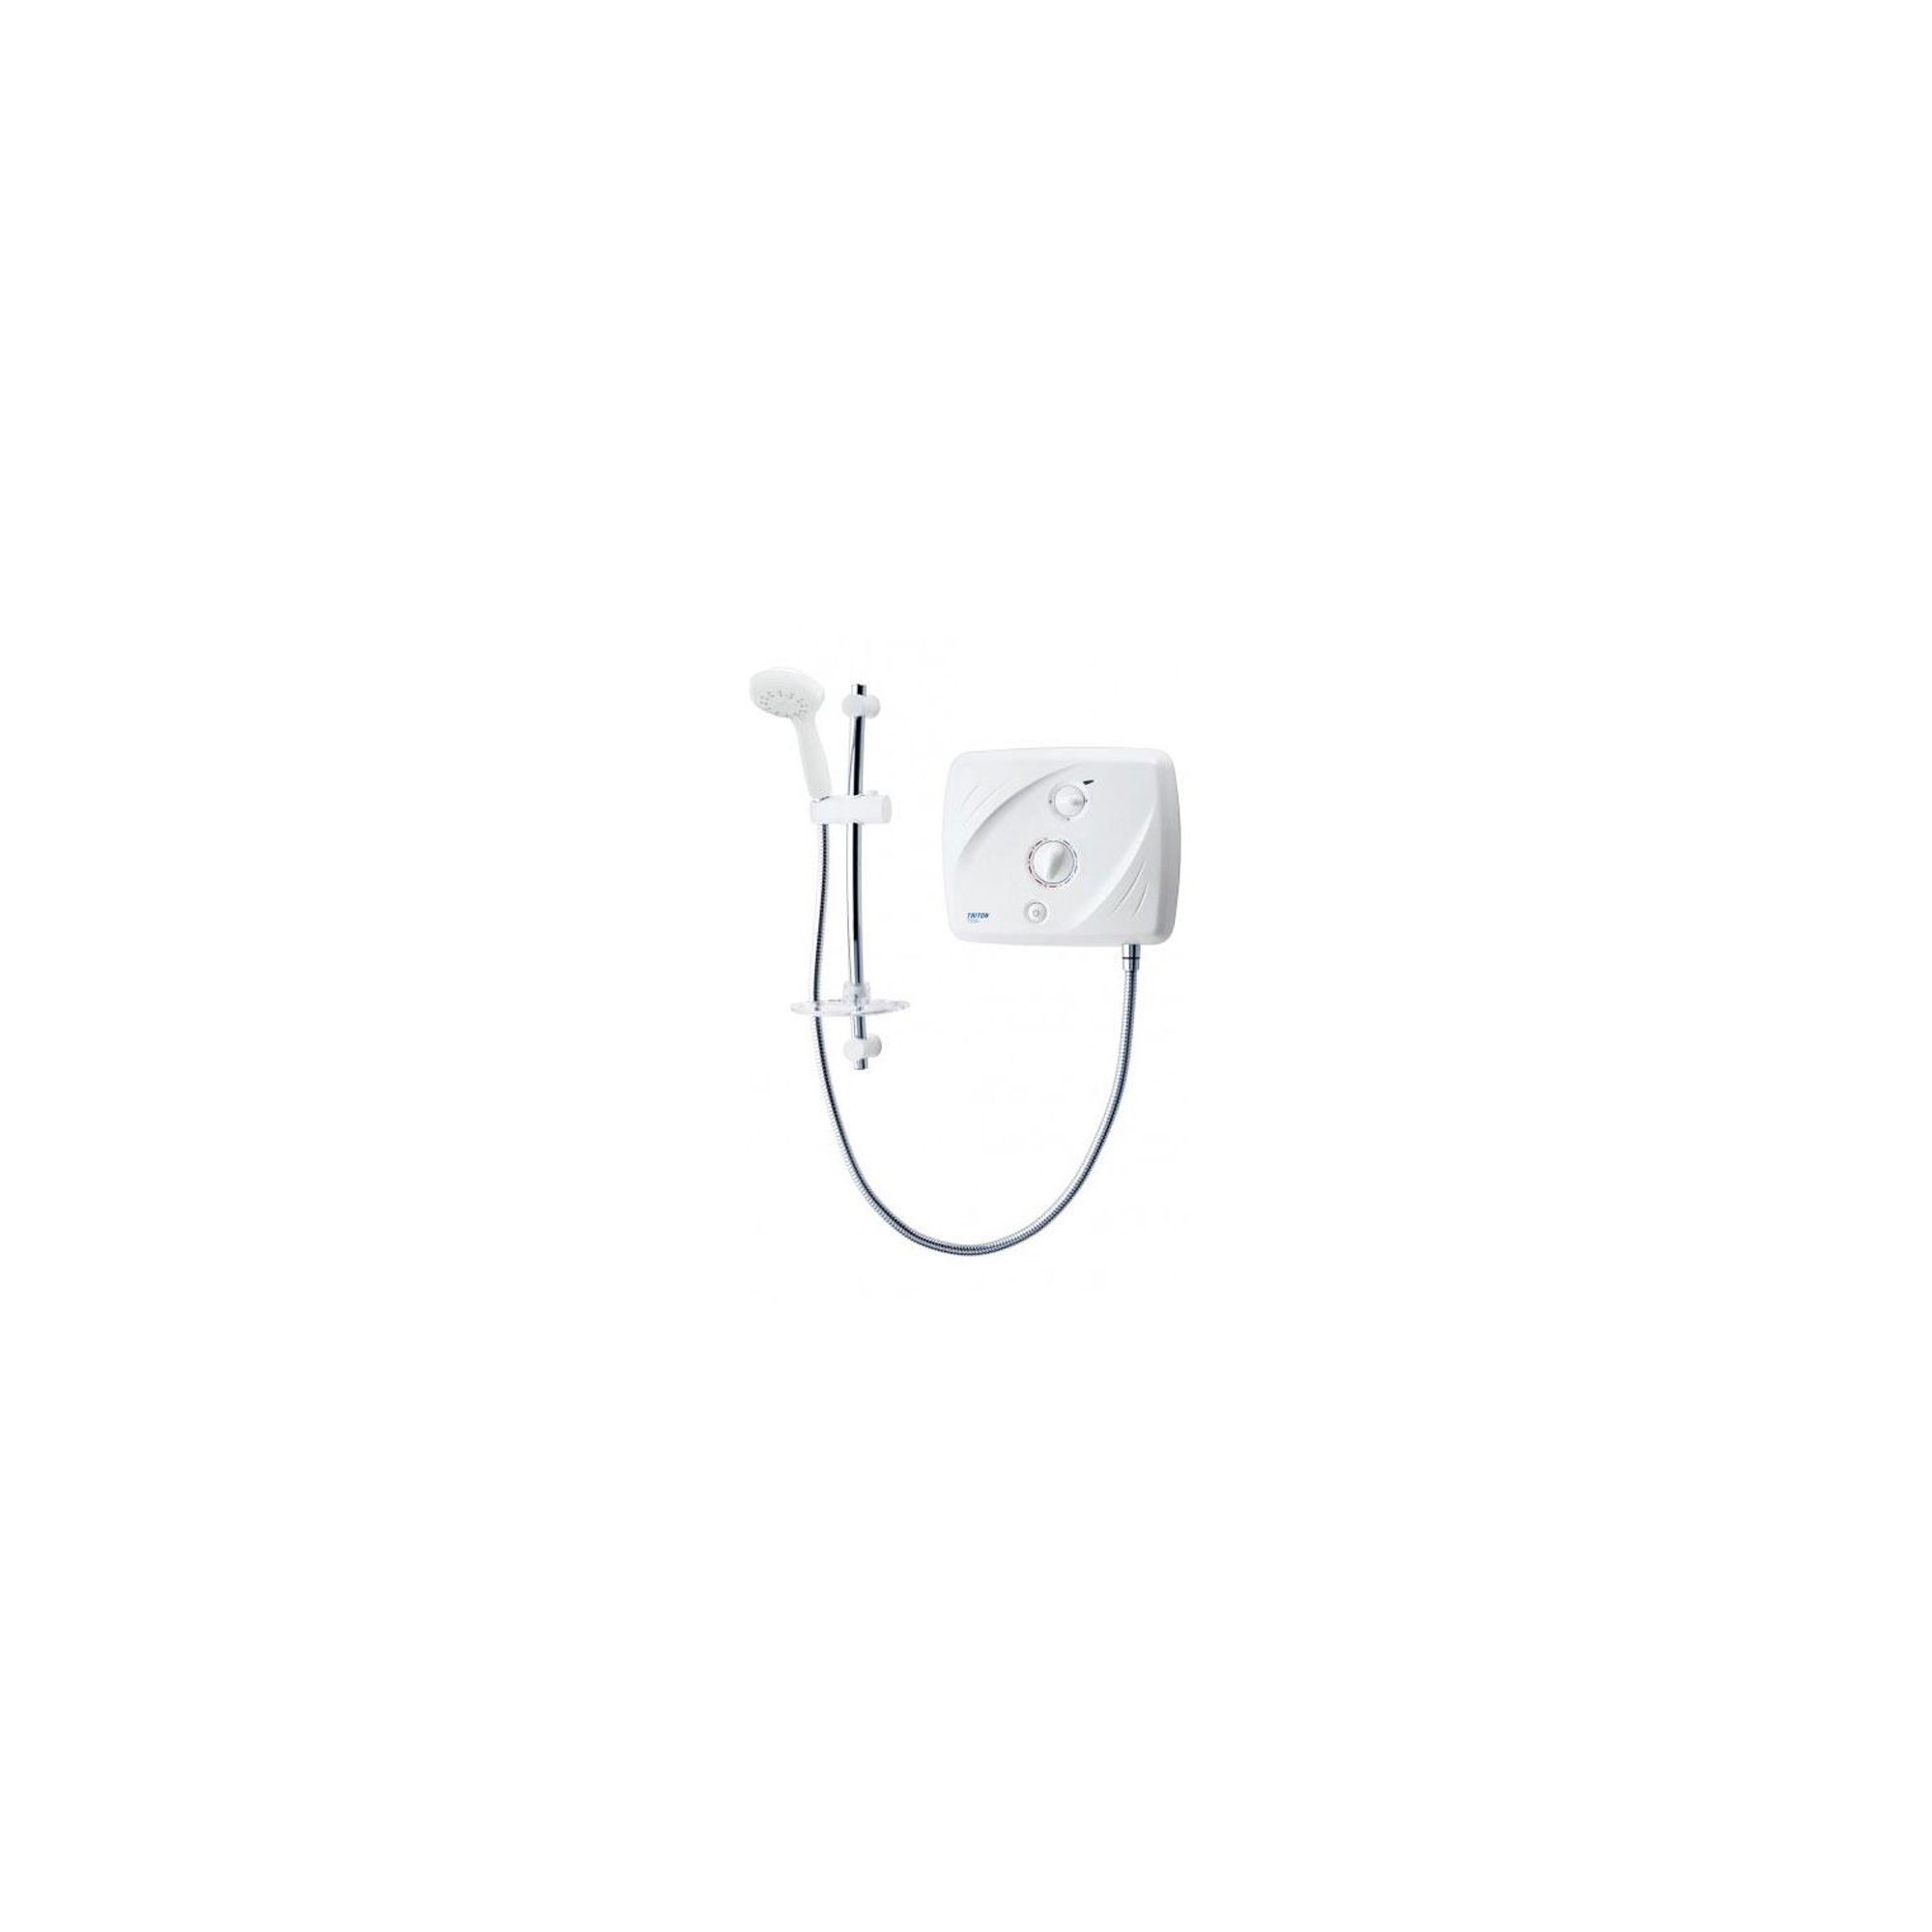 Triton T90xr Pumped Electric Shower White/Chrome 8.5 kW at Tesco Direct